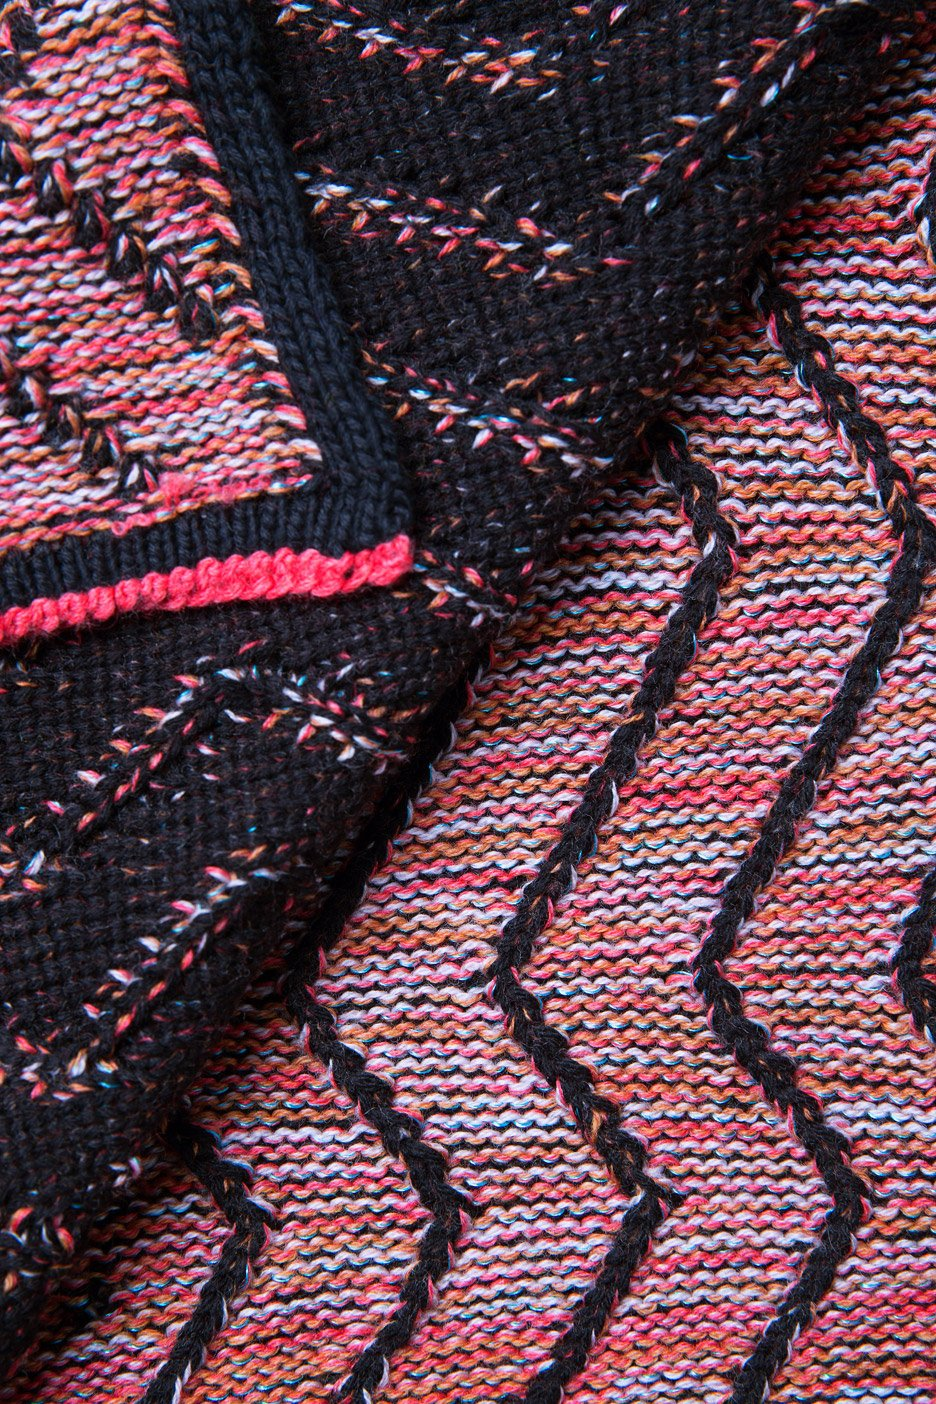 Plaid textile collection by Simone Post and Studio Truly Truly for TextielMuseum